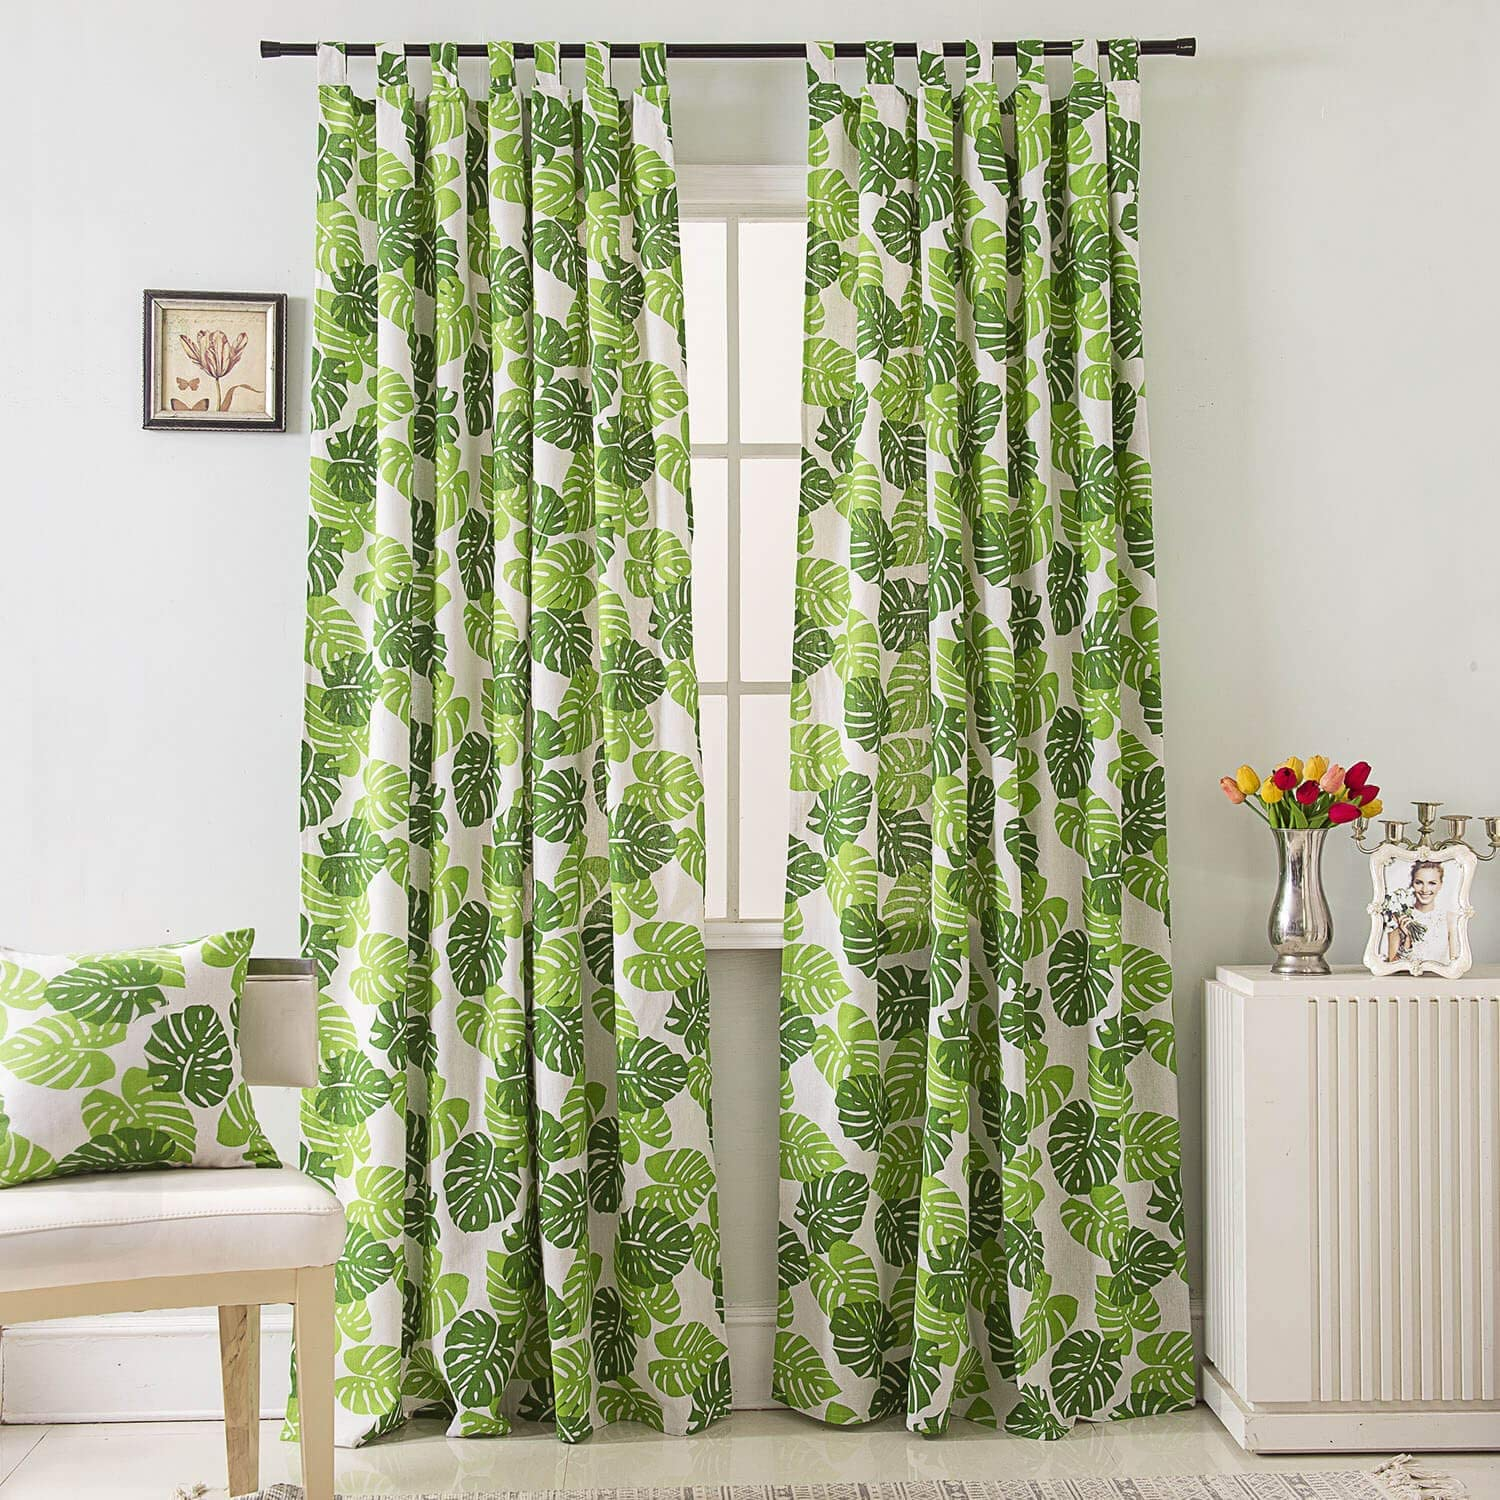 BROSHAN Tab Top Drapes and Curtain, Modern Watercolor Fresh Green Leaf Design Window Curtain, Nature Print Room Darkening Tab Top Curtain Drapes for Window Treatment, 1 Panel, 55W x 78L Inch